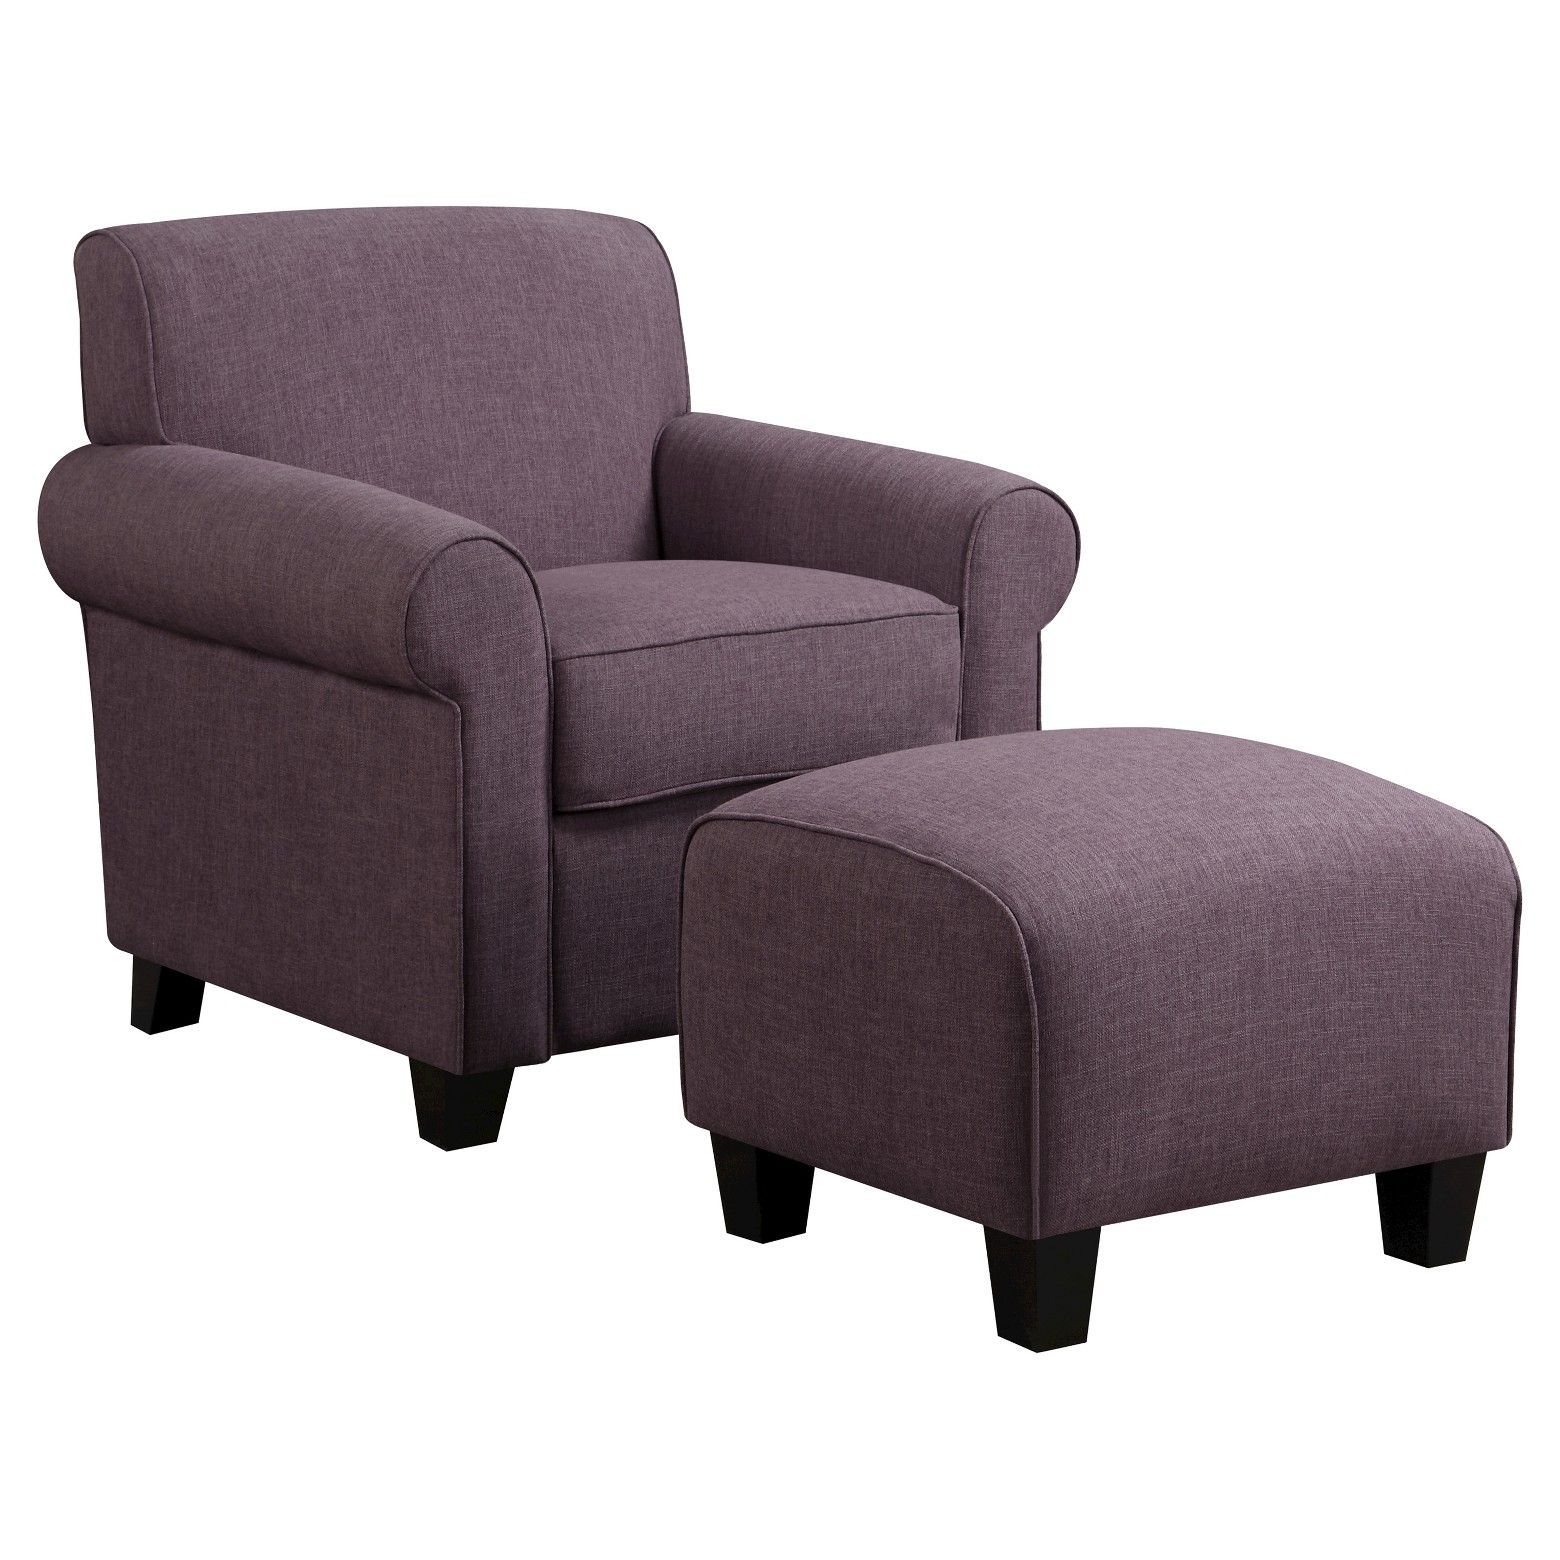 Wendy Rounded Linen Arm Chair Amp Ottoman Handy Living